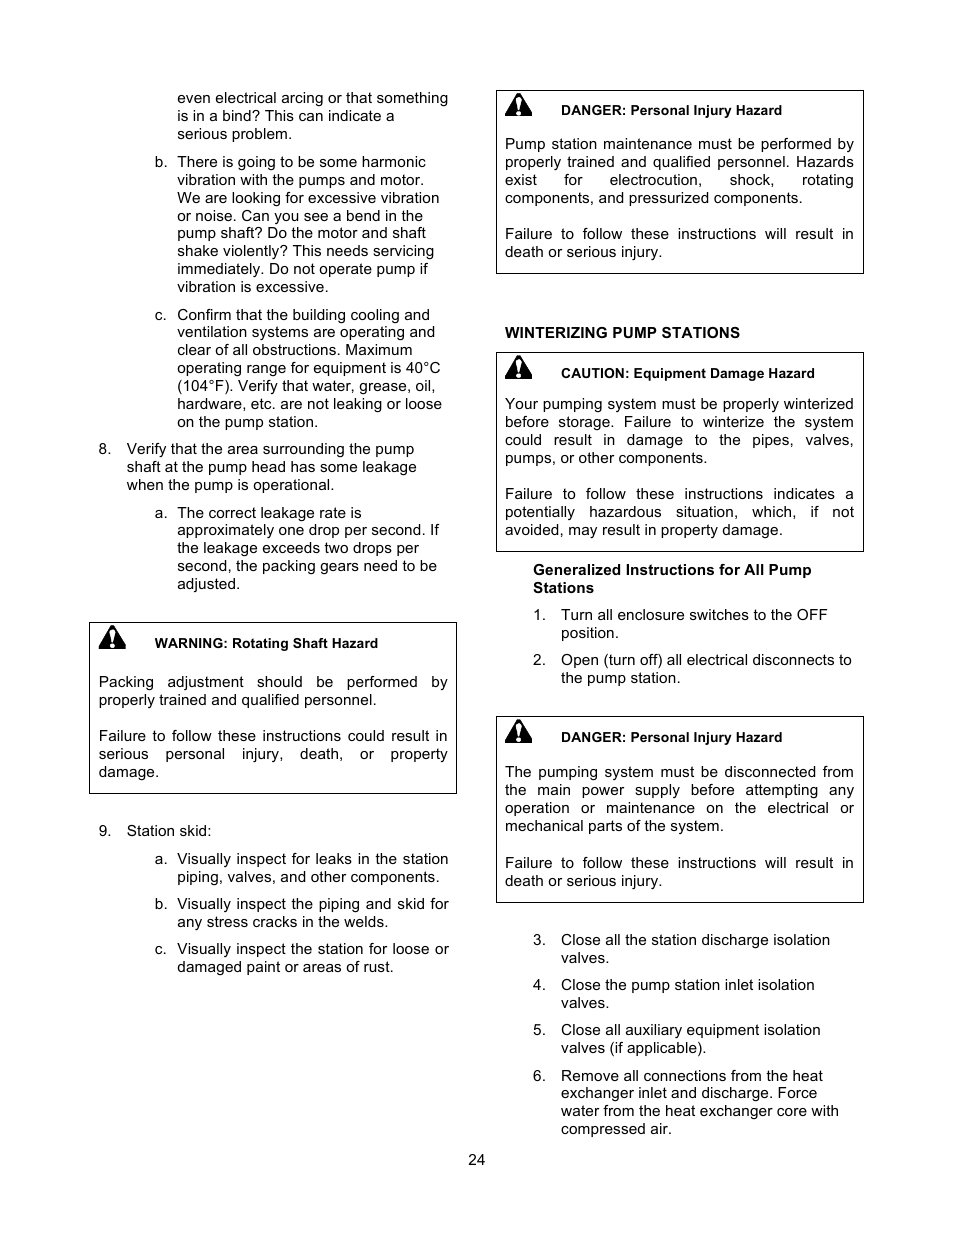 Xylem 19 001 200 R2 SILENT STORM VFD Pumping System User Manual | Page 26 /